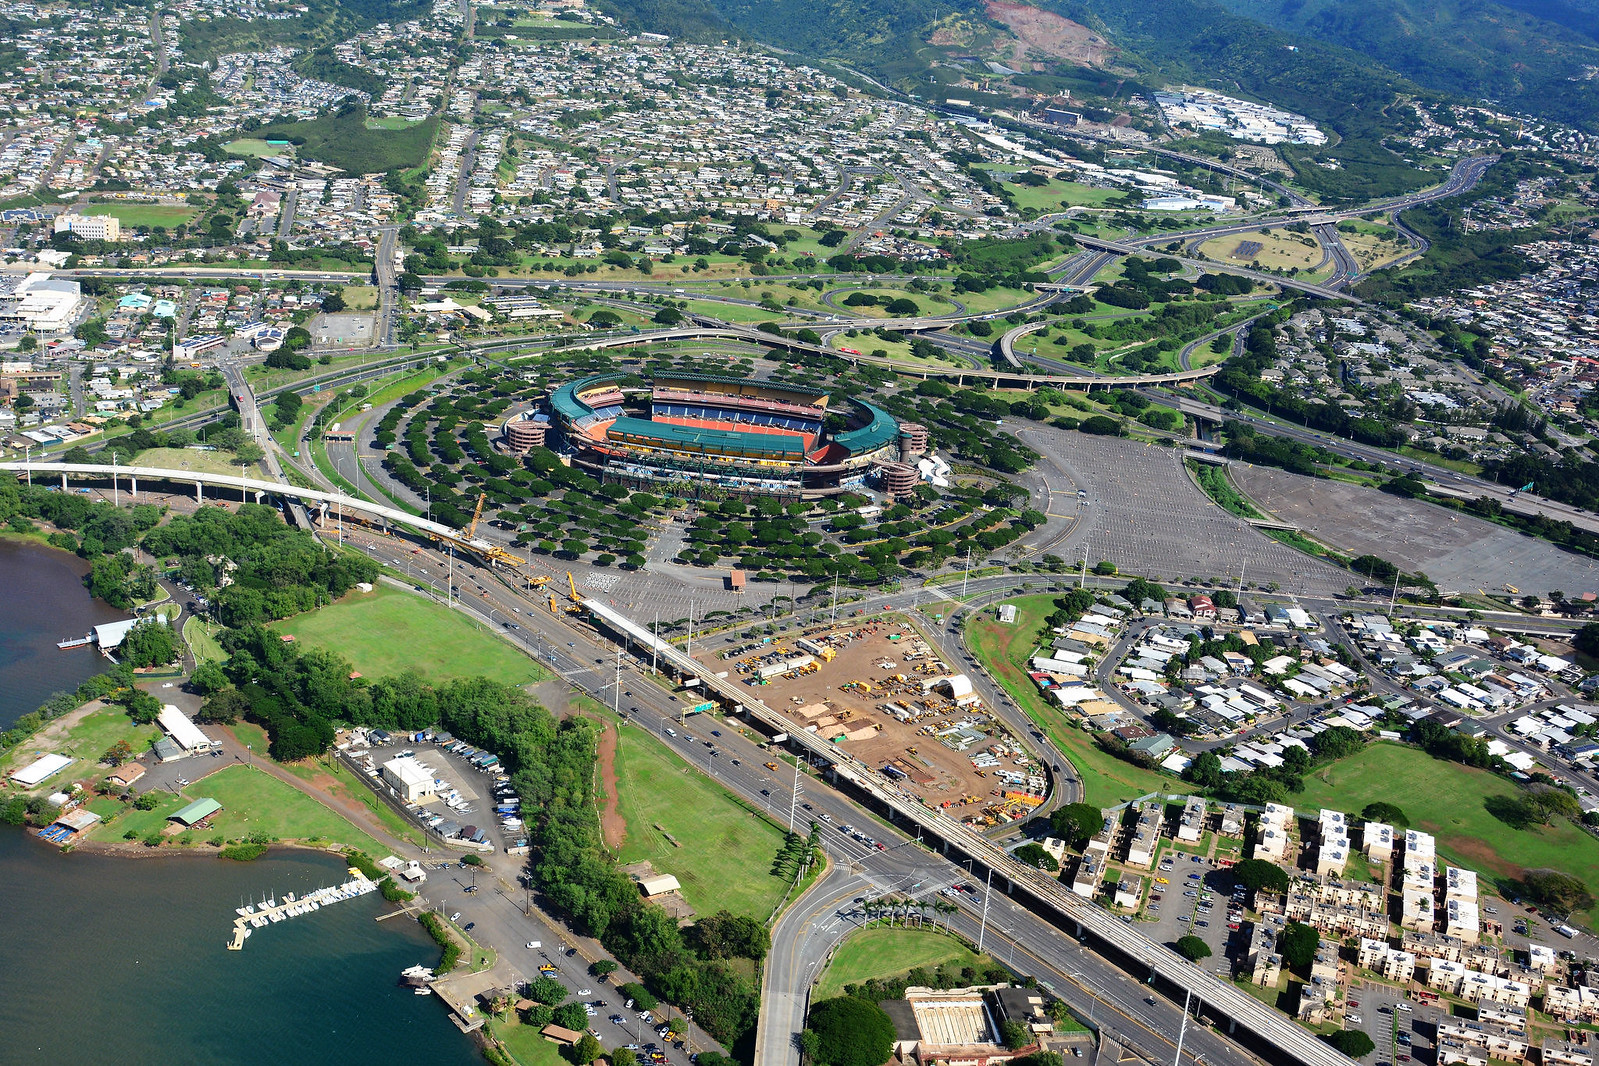 HONOLULU - New Aloha Stadium - SkyscraperCity